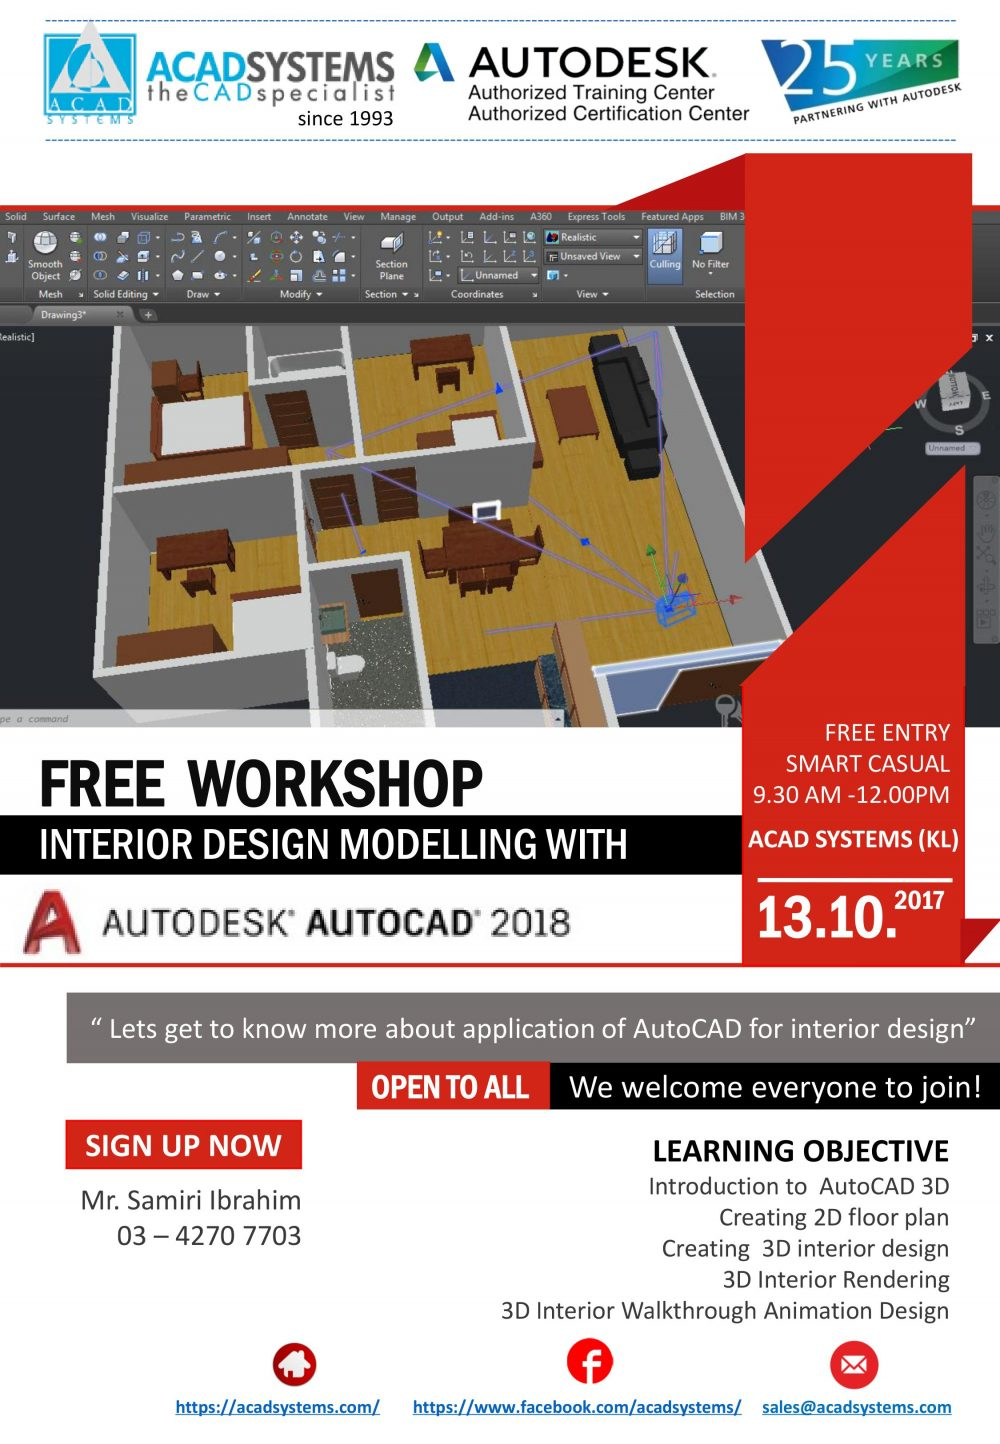 Interior design modelling with autodesk autocad 2018 for Architecture 2018